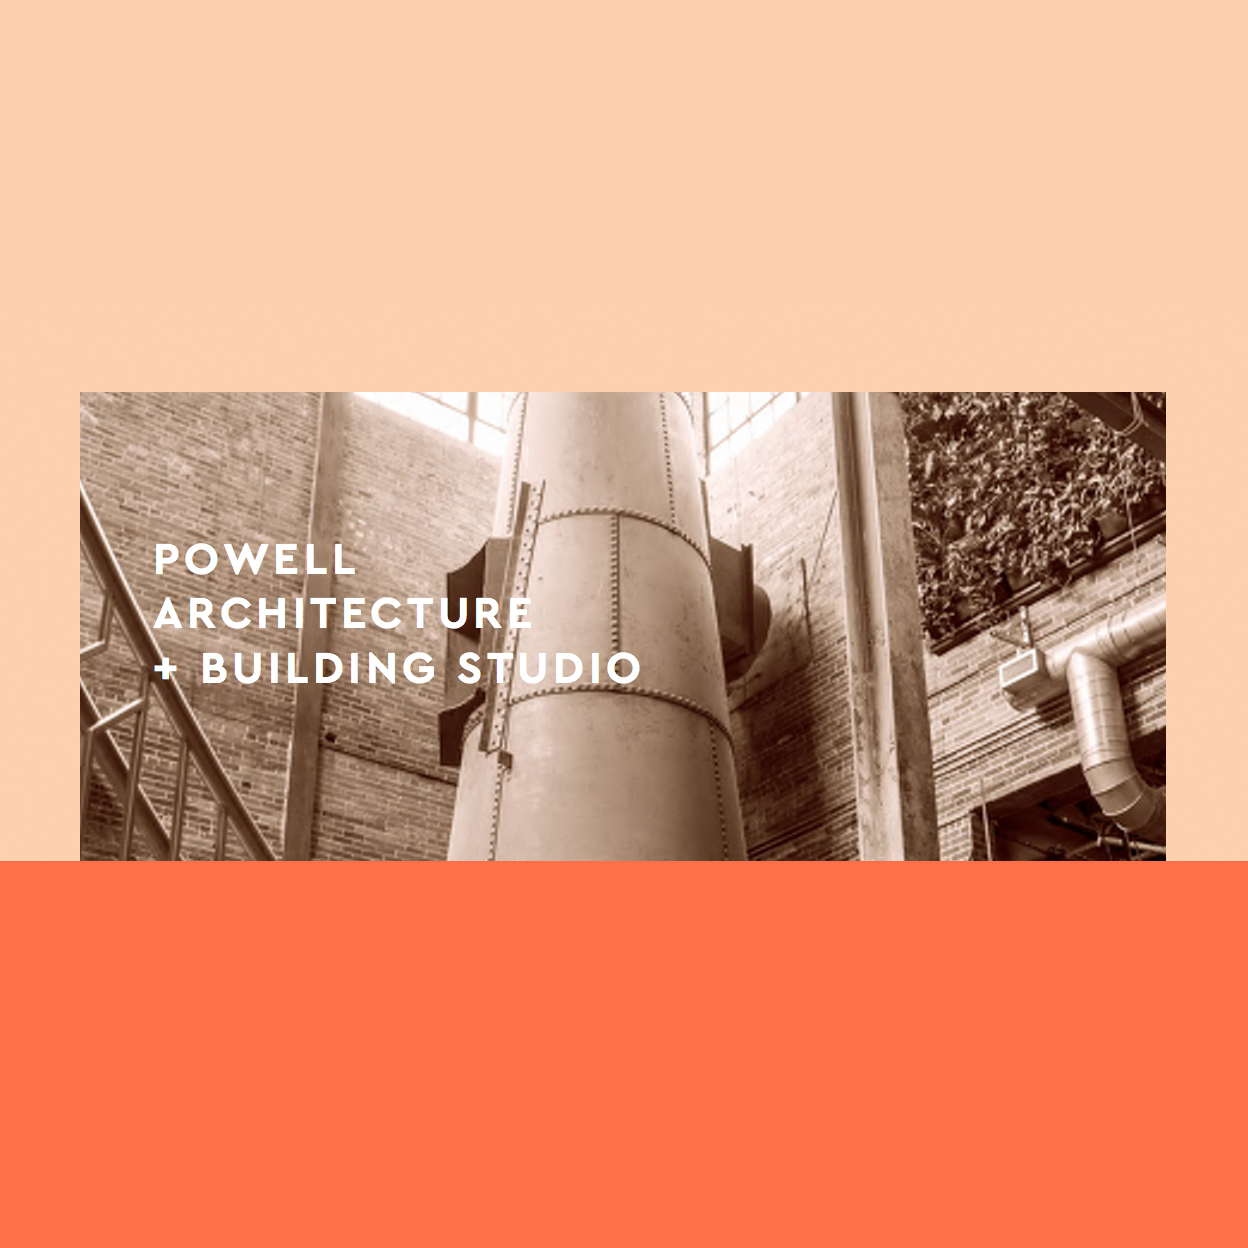 """Powell Architecture + Building Studio LookbooK - Real talk: I am a massive, massive fan of Nashville's Powell Architecture + Building Studio — they're responsible for some of the city's most visually stunning restaurants and commercial buildings. So getting asked to write copy for their gorgeous lookbook was a sincere honor. Their team wrote the intro graf — """"The Design-Build Difference"""" — but the rest of the copy was mine. Check out the full lookbook here."""